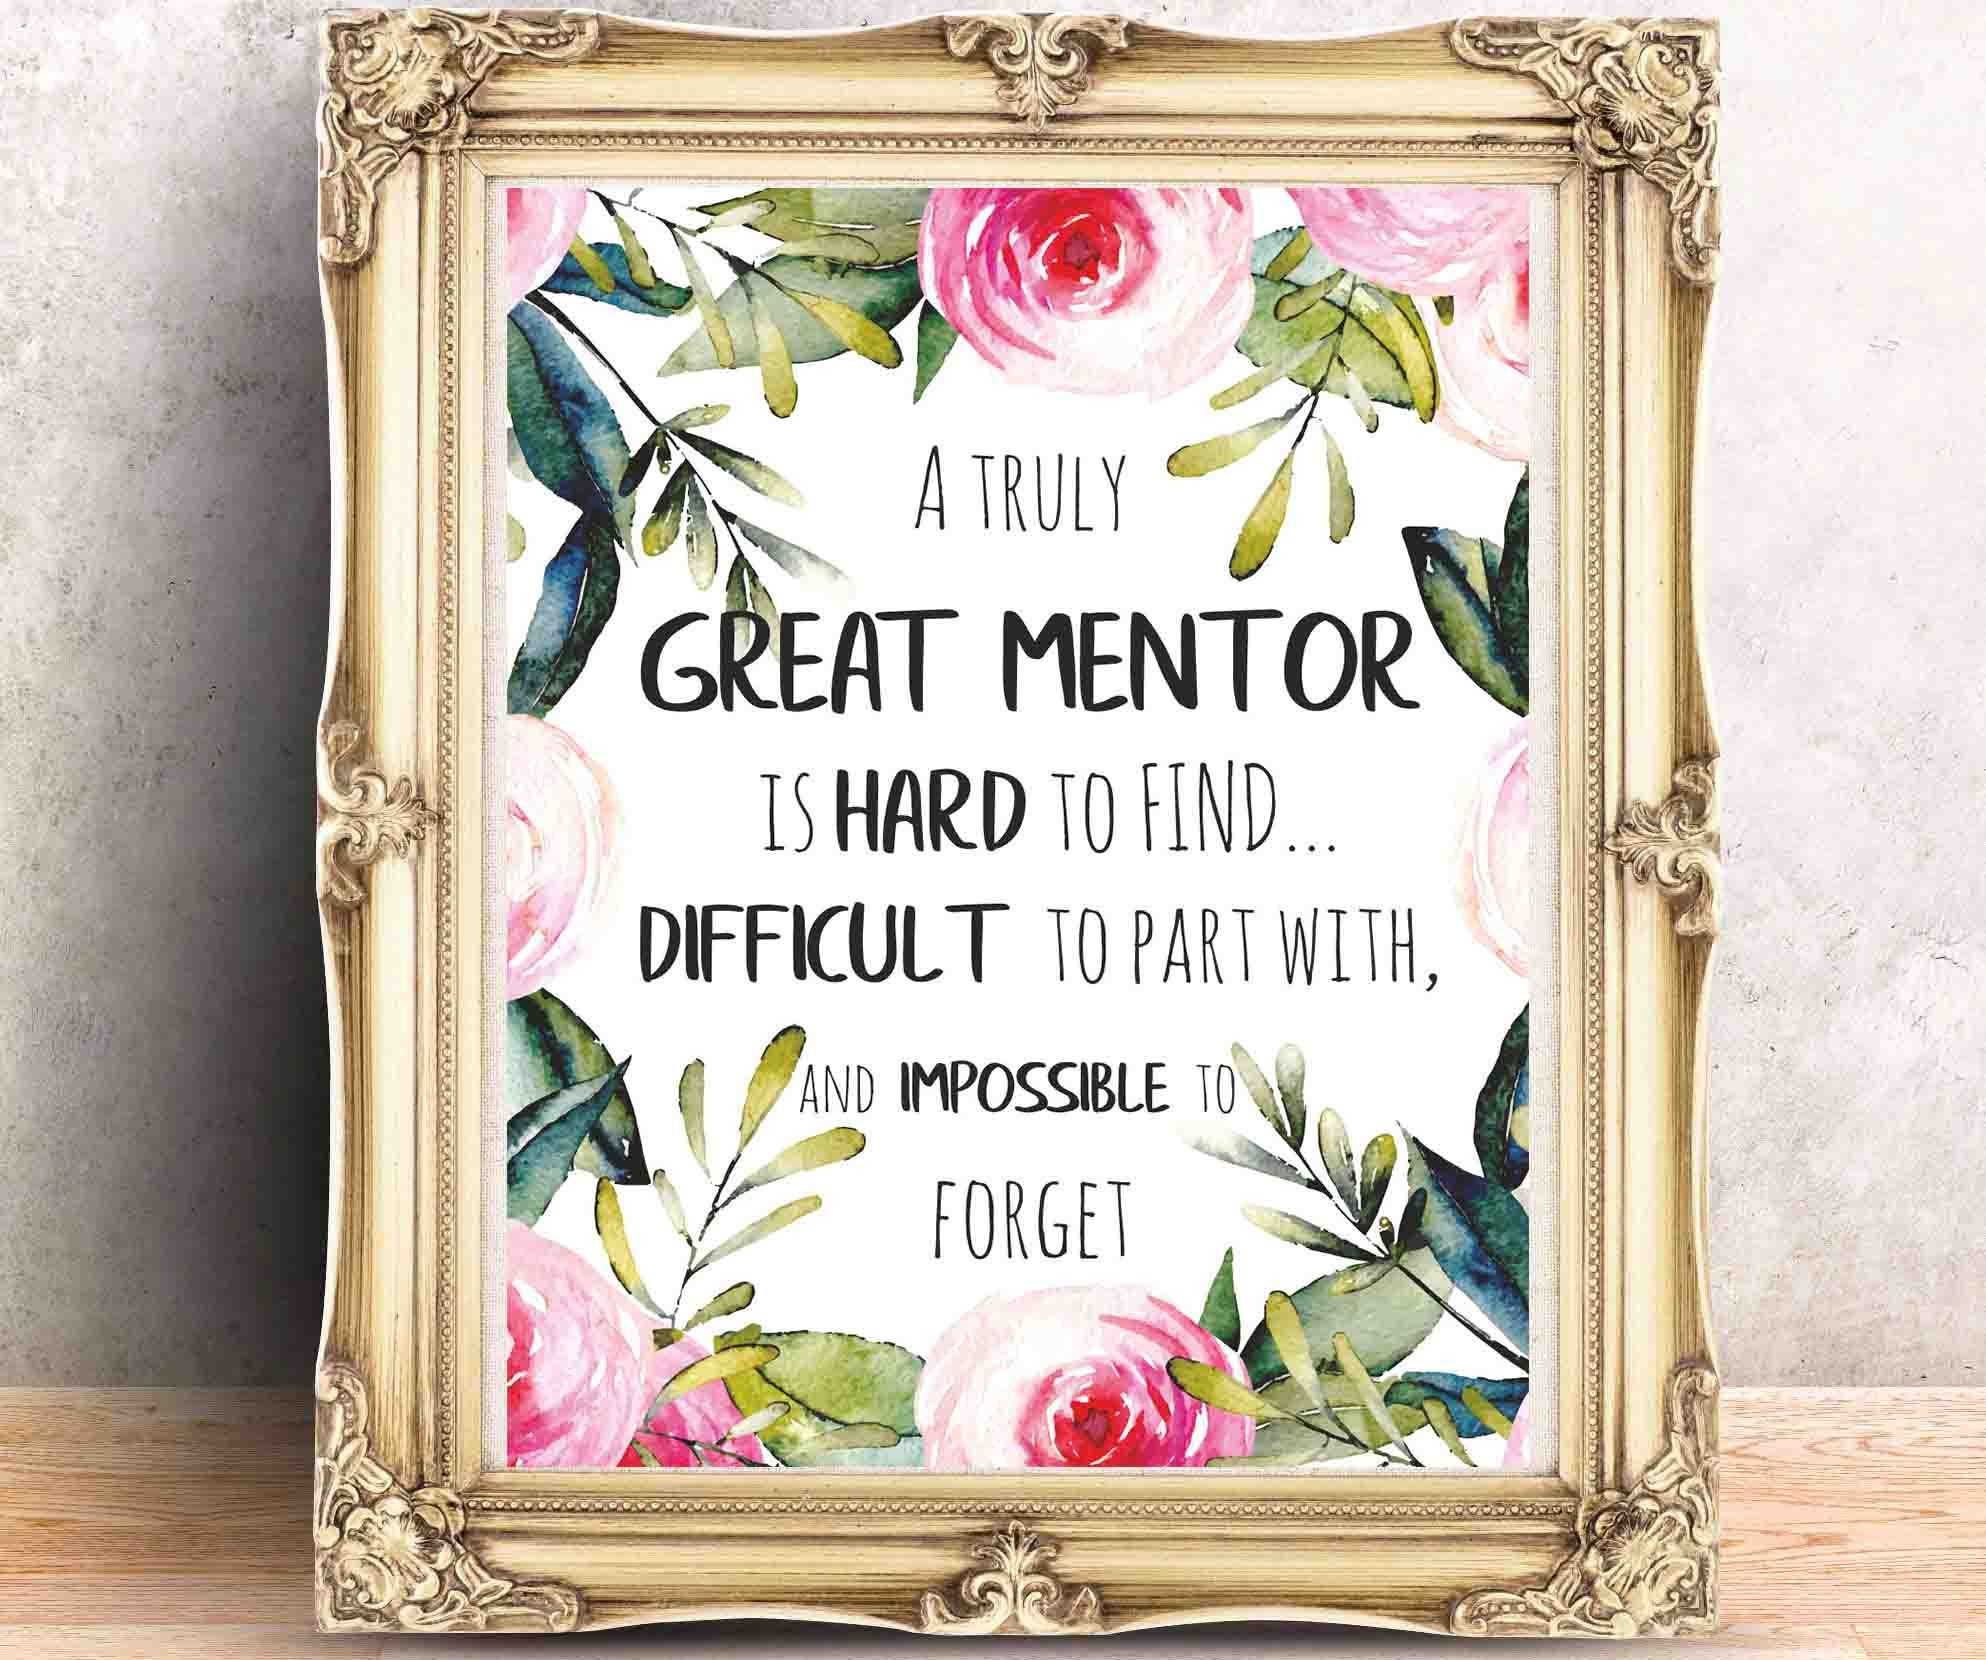 A truly great mentor is hard to find, Mentor Gift Printable, Mentor Quote Download, Mentor Thank You, Custom Quote Print Mentor Appreciation